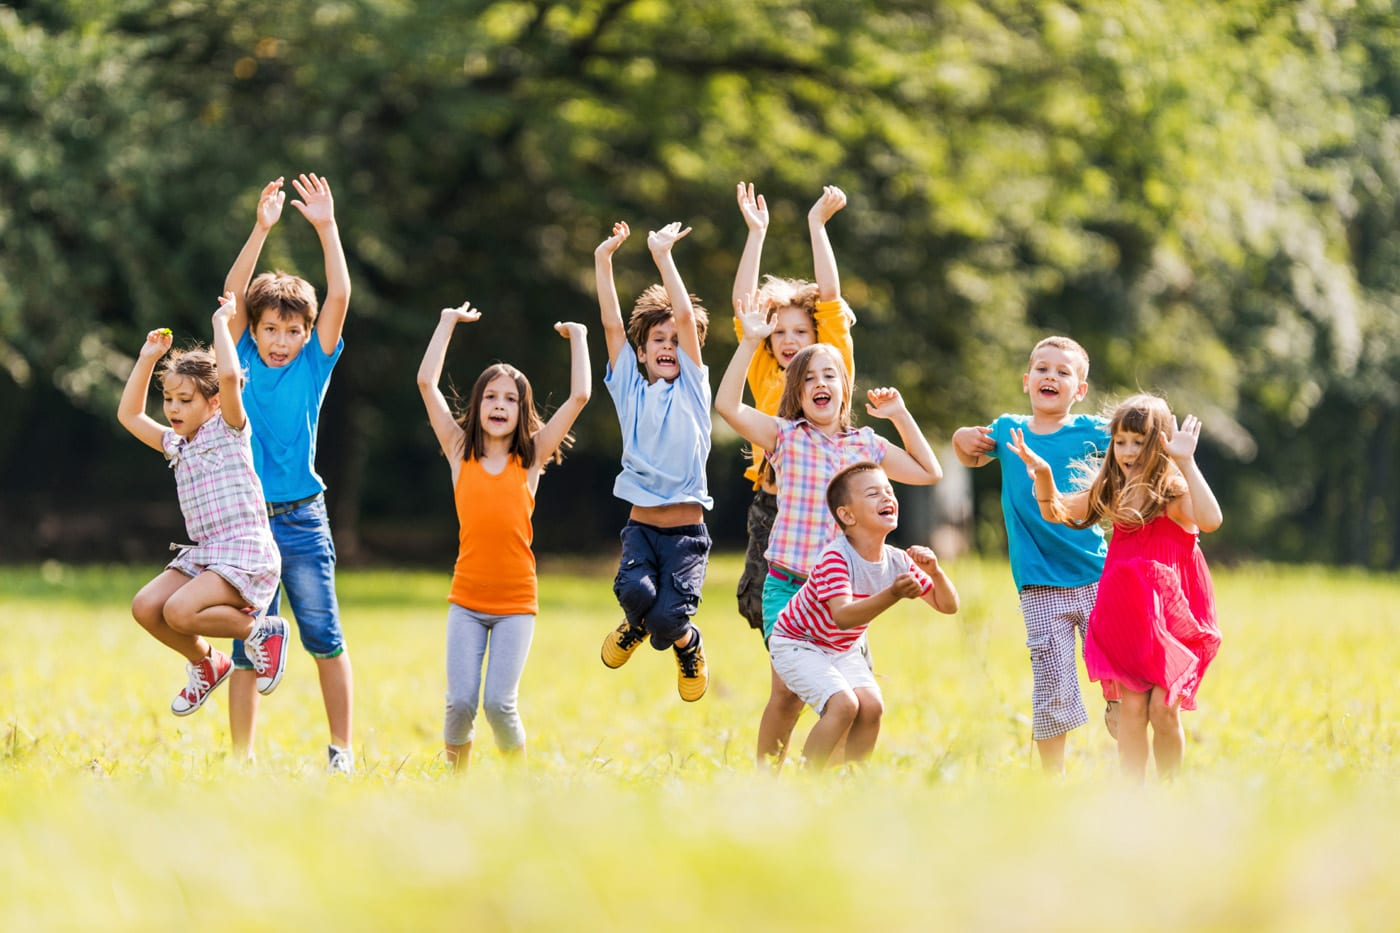 Large group of children jumping in the park and having fun.